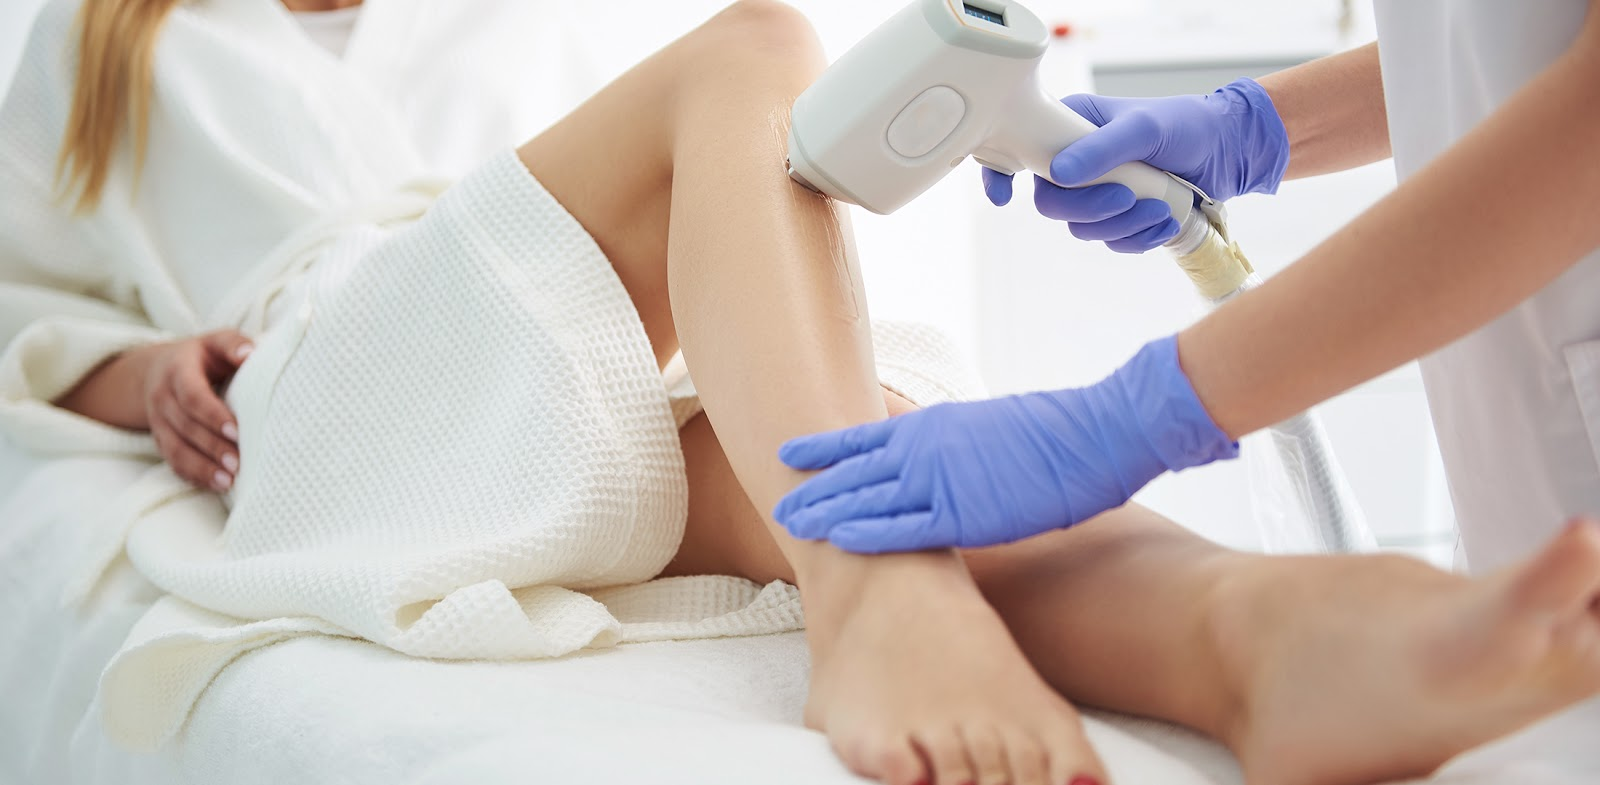 https://web1expert.com/what-you-need-to-know-about-hair-removal-a-short-guide/